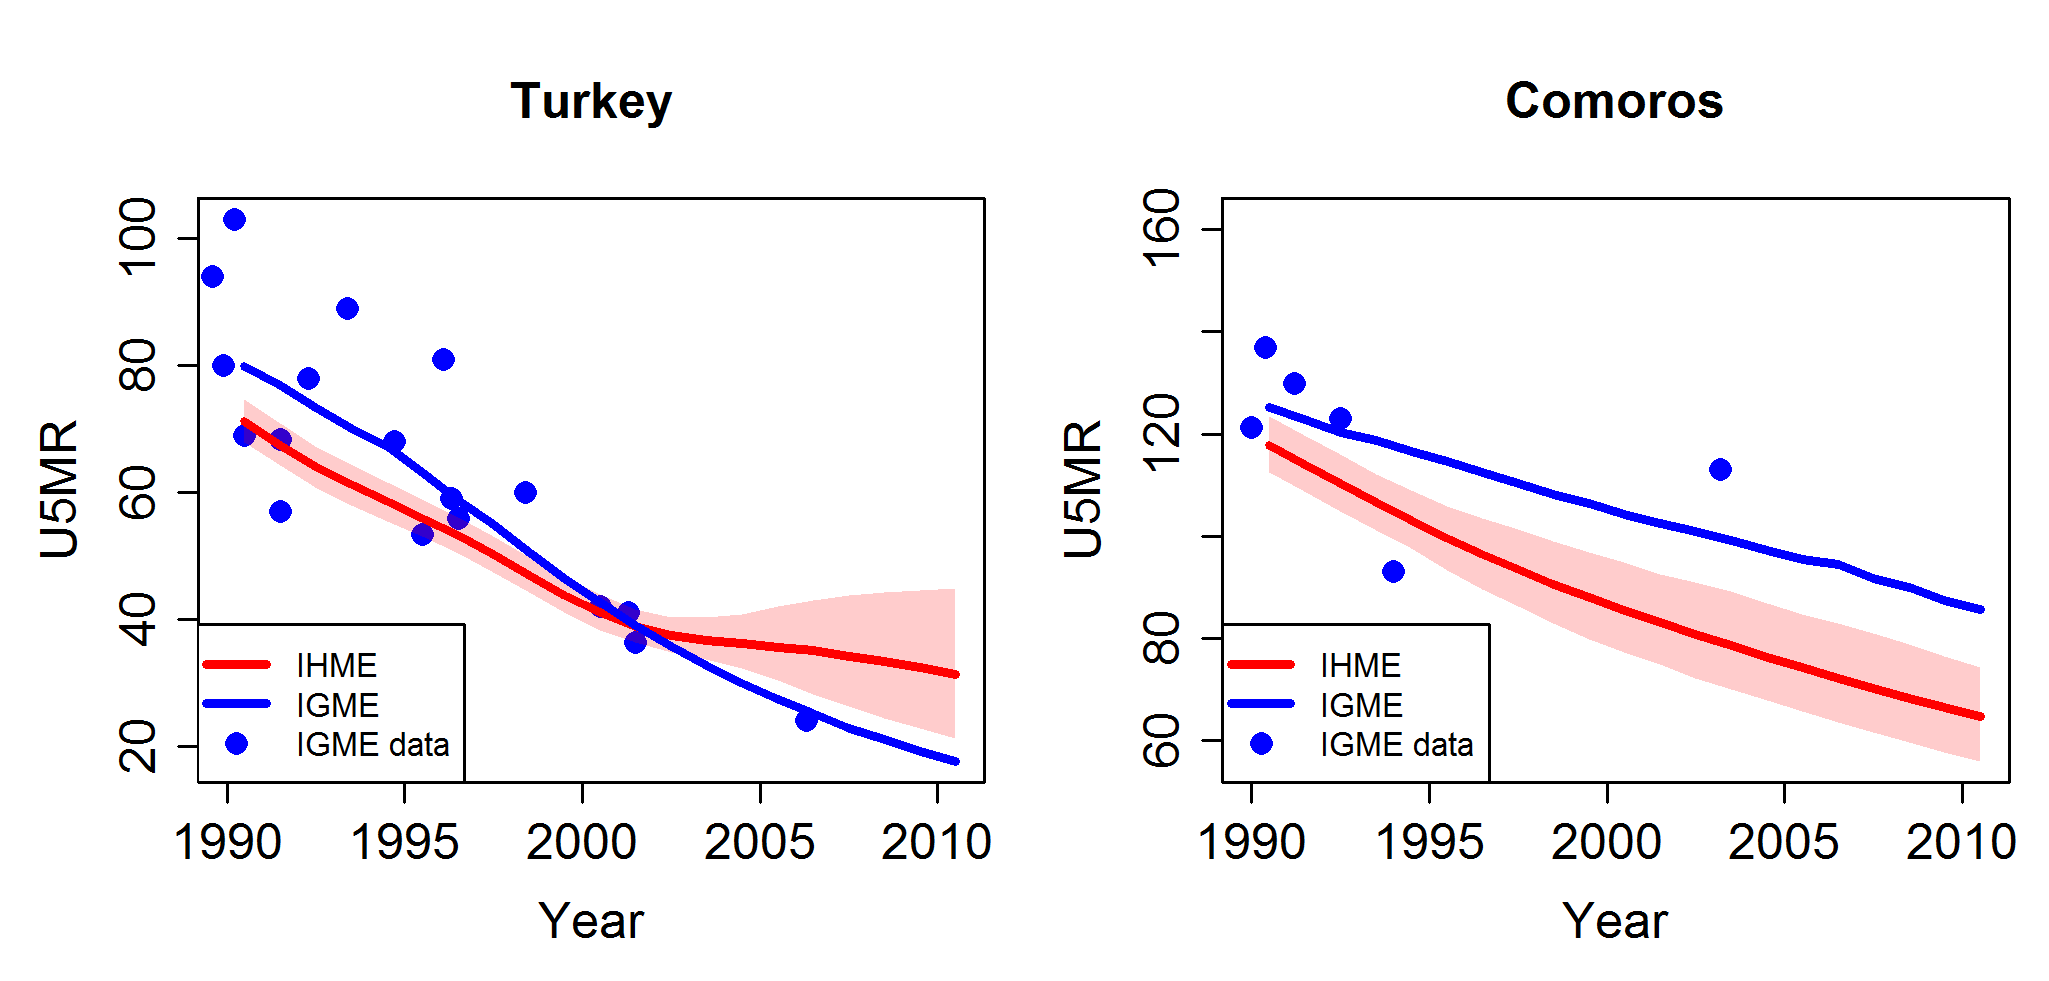 Comparison of U5MR estimates from 1990 to 2010 for examples of countries with different completeness of the databases used by the UN IGME and the IHME.